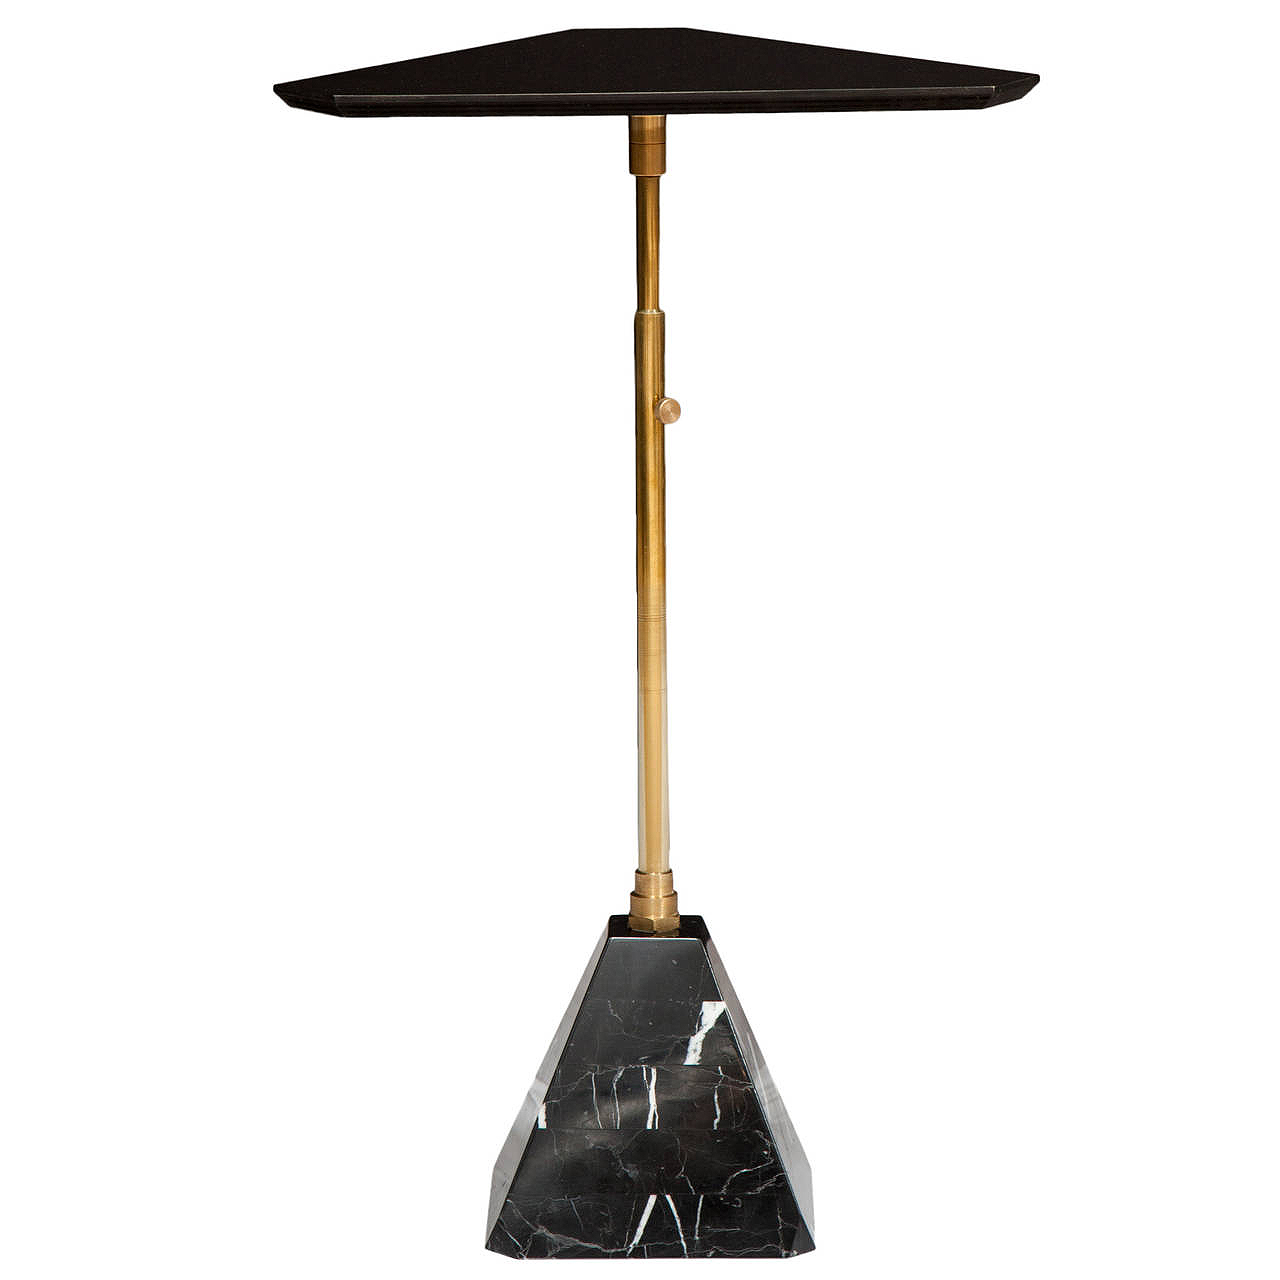 "Black colorfin top   Telescoping brass post   Nero Marquina marble base  22"" H x 15"" W x 15"" D"